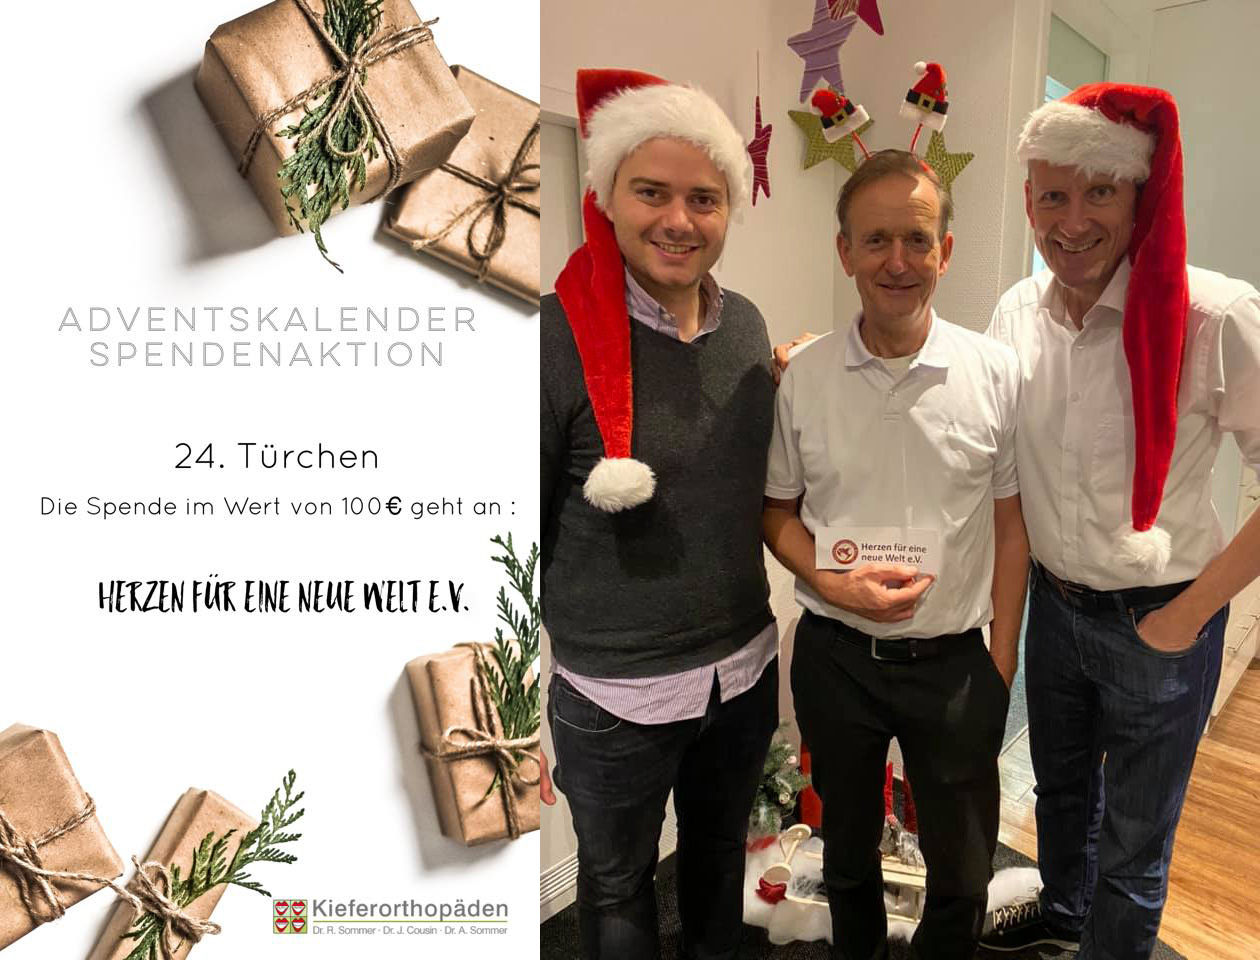 Adventskalender Spendenaktion · 24. Türchen